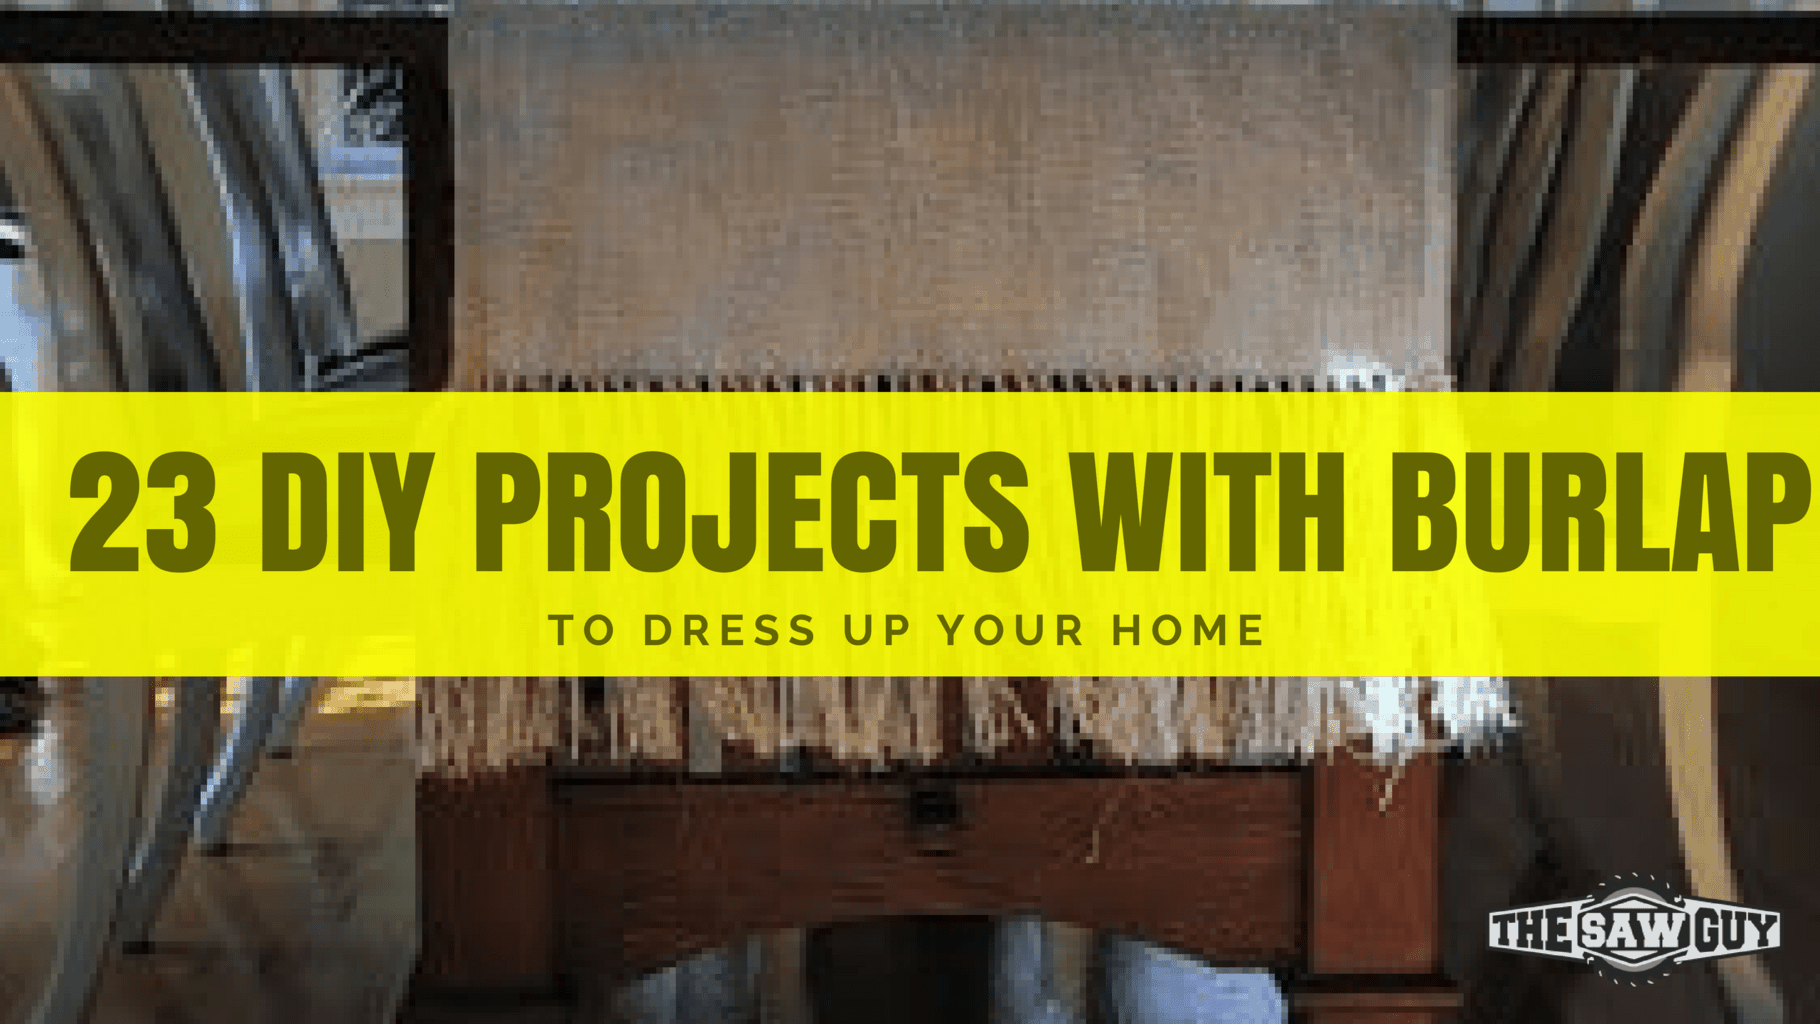 23 DIY Projects with Burlap To